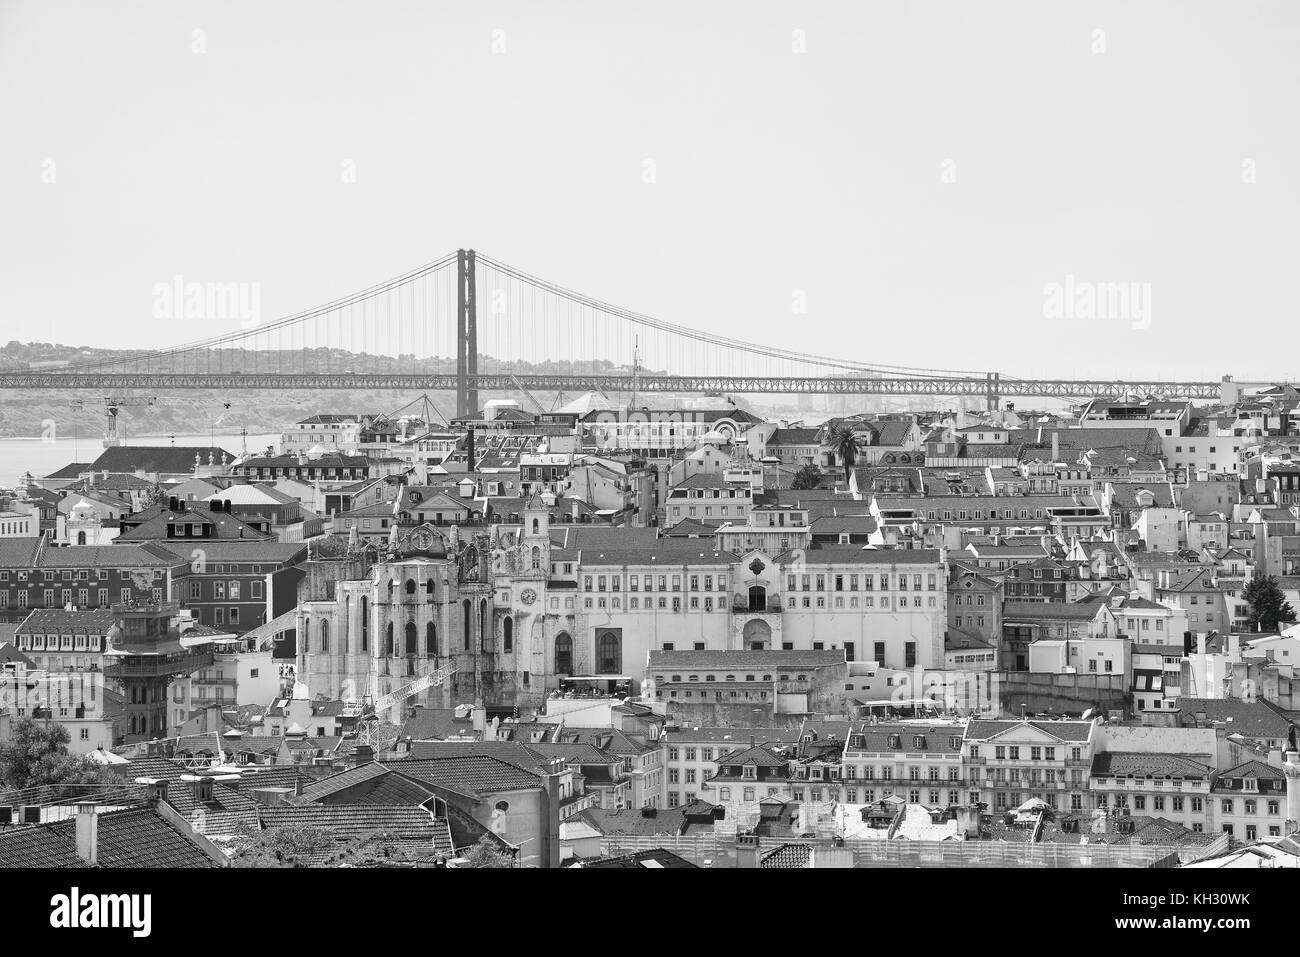 Alfama downtown and the 25 April Bridge in Lisbon, Portugal. - Stock Image